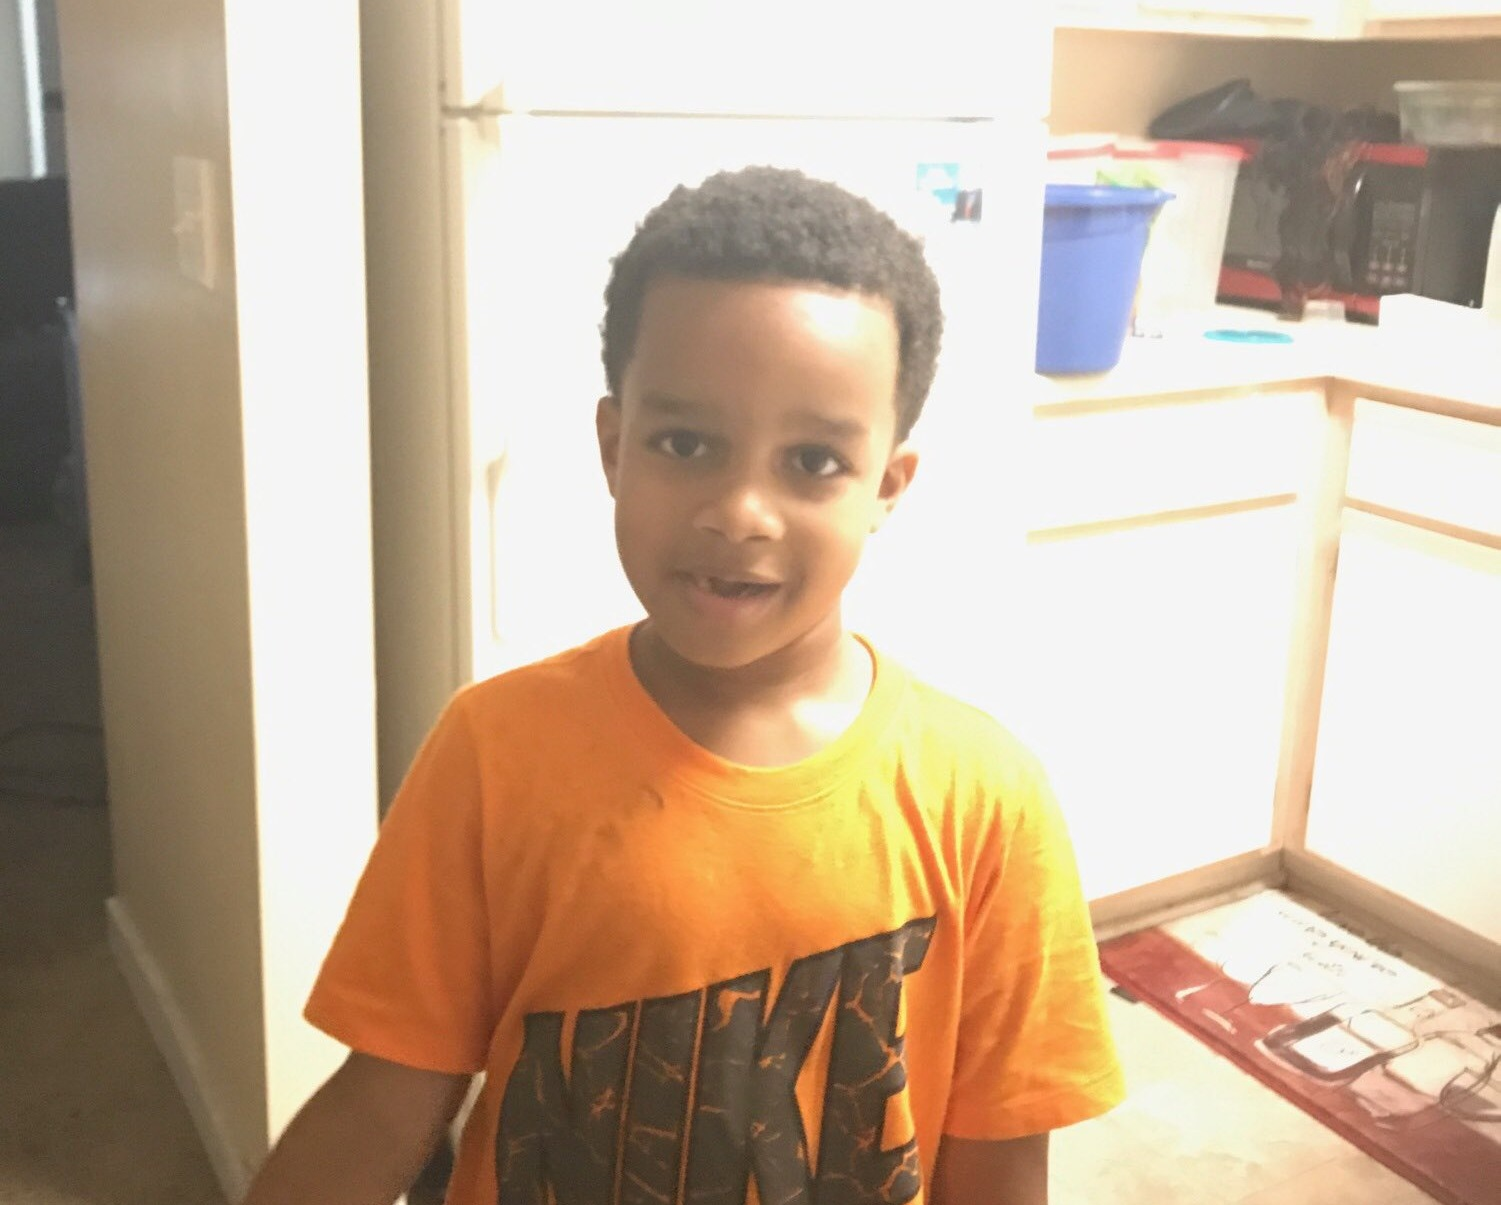 Mississippi Car Theft Six Year Old